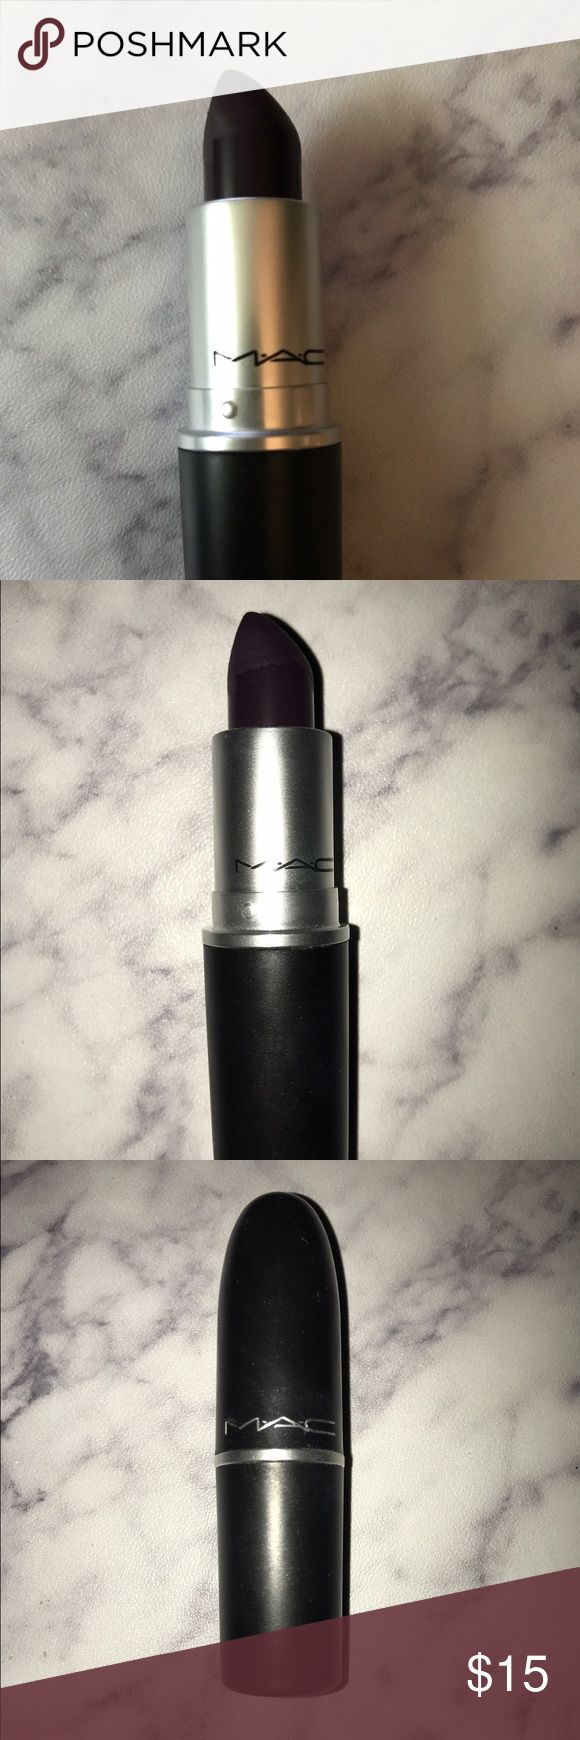 MAC Cyber Lipstick Shade: Cyber.      Used only once MAC Cosmetics Makeup Lipstick